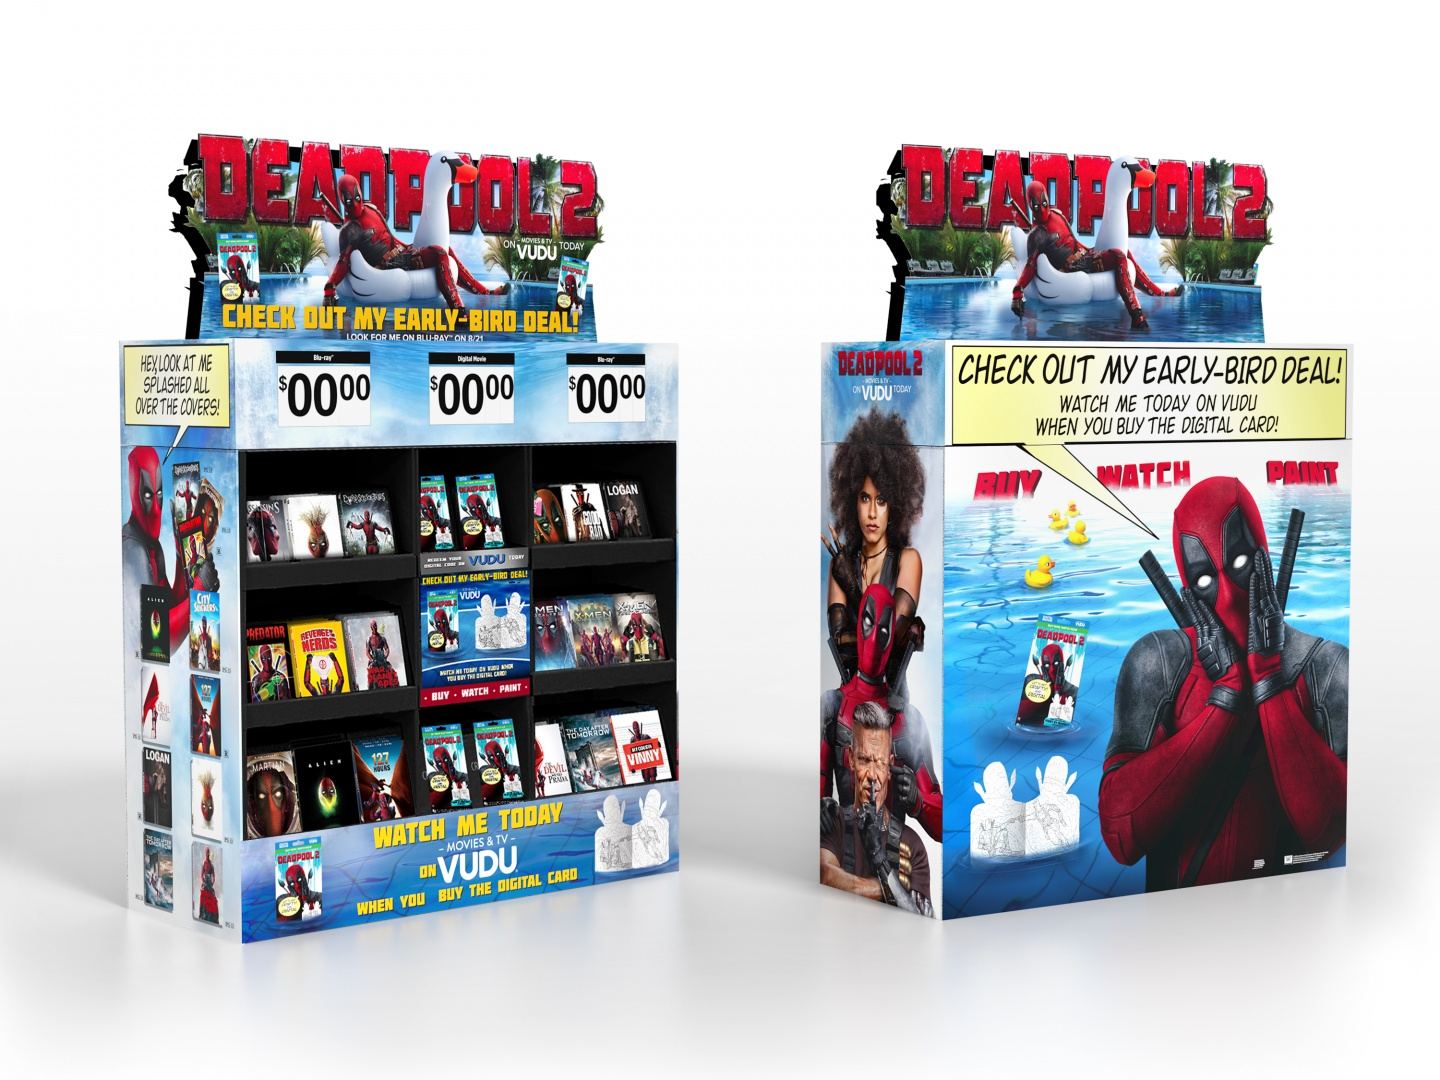 Image for DEADPOOL 2 Home Entertainment Display: WT1 8/7 Digital Cube